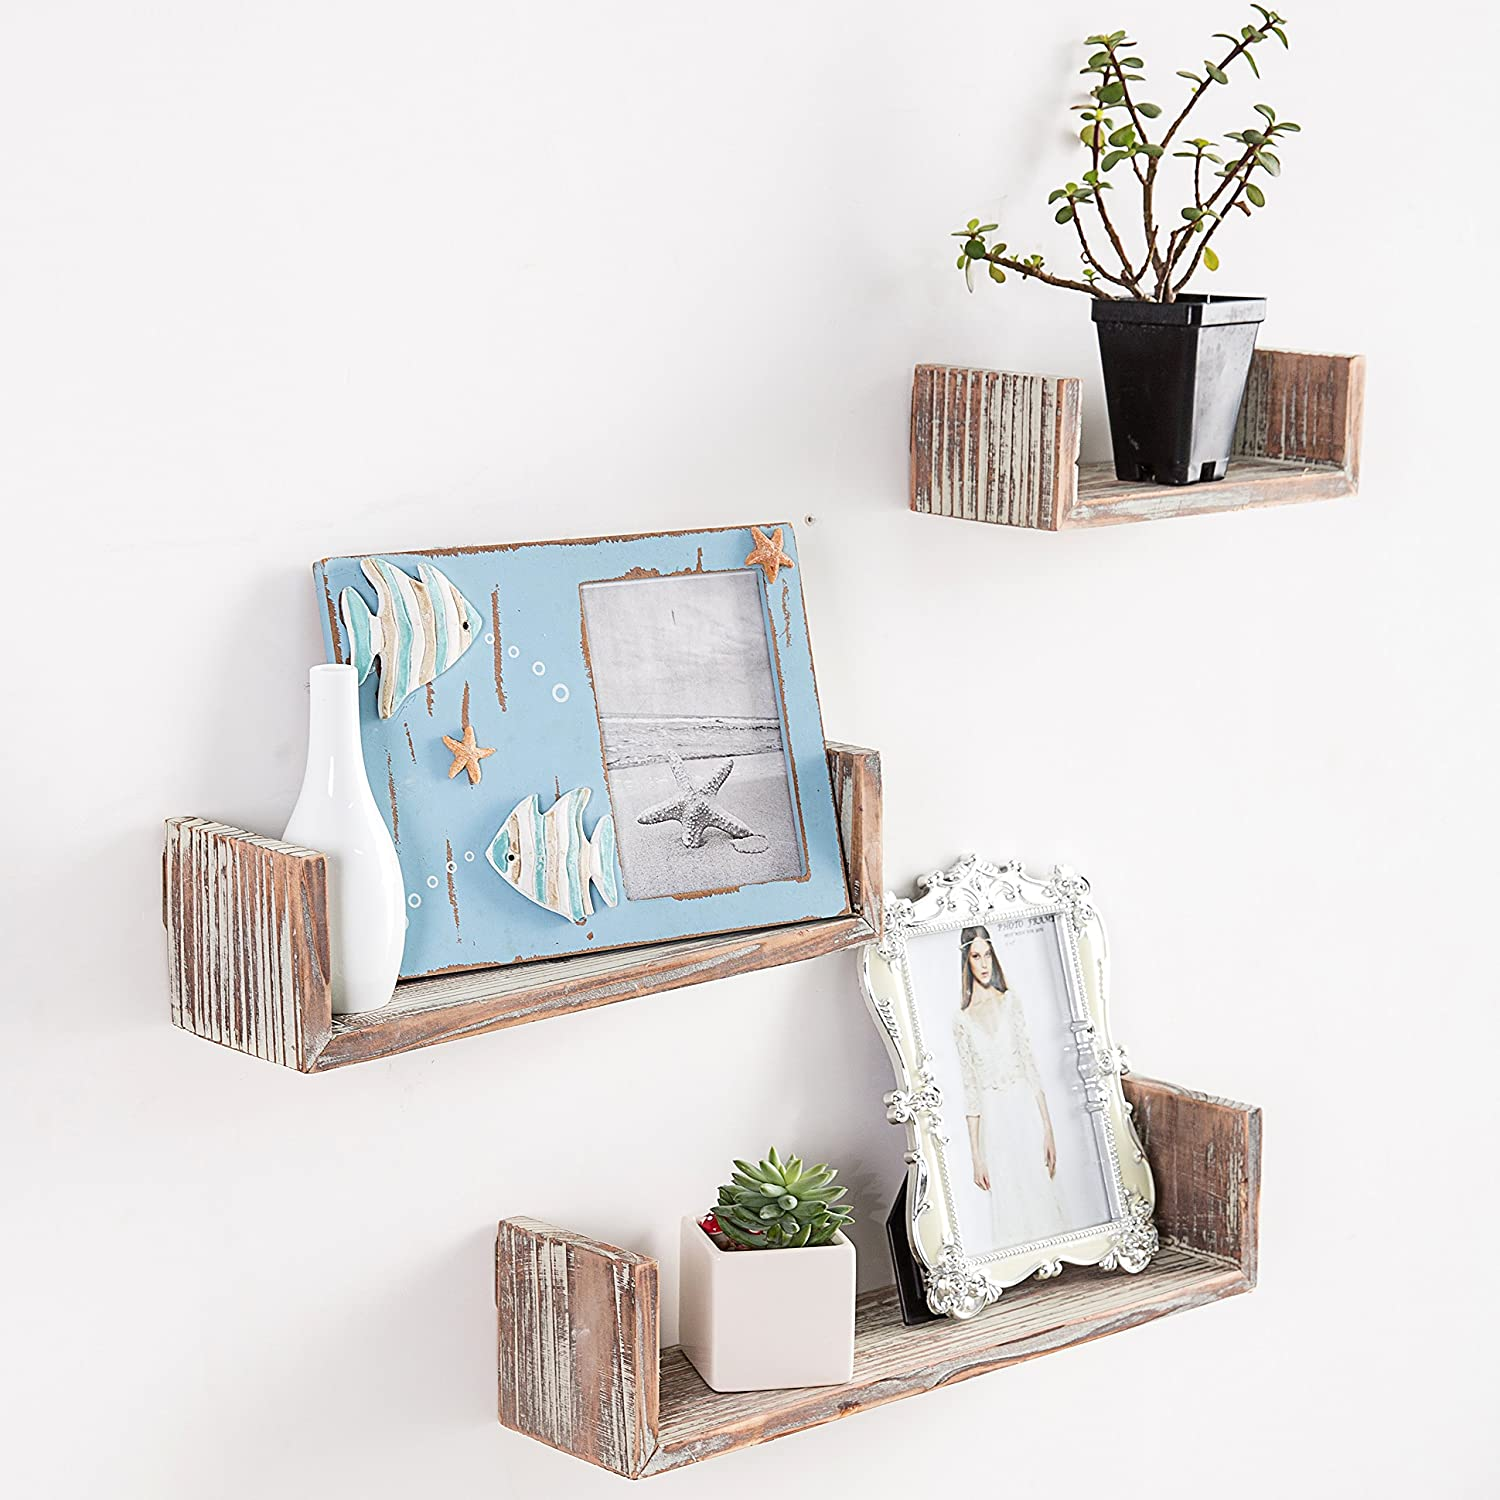 Wall Mounted Torched Wood U-Shaped Floating Shelves, Set of 3, Dark Brown MyGift